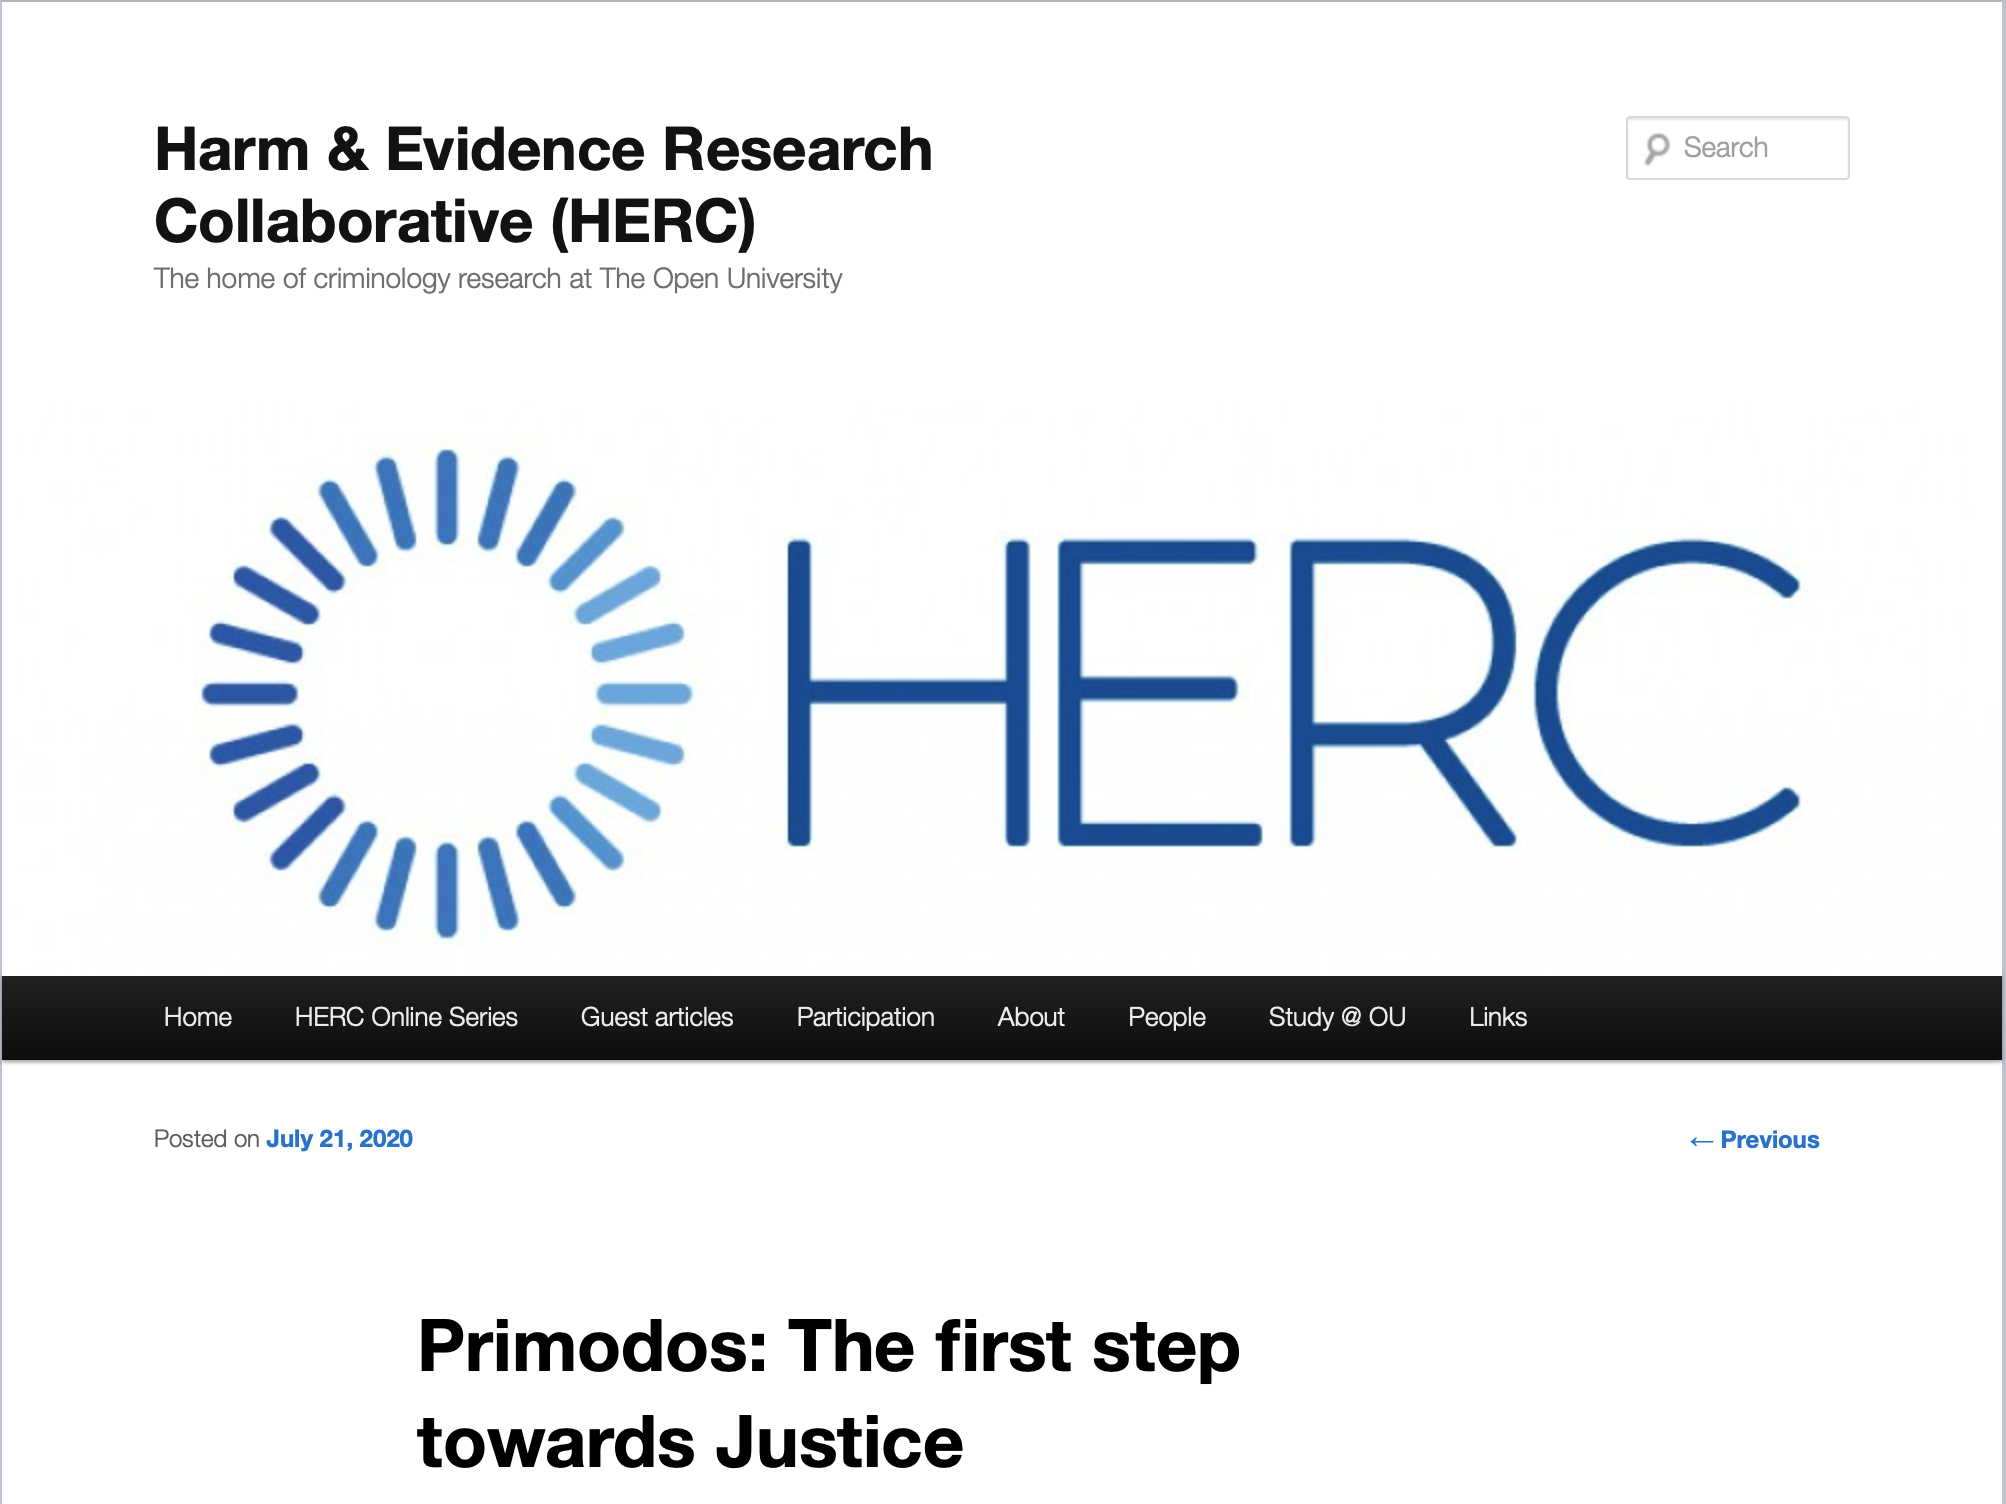 Primodos: The first step towards Justice